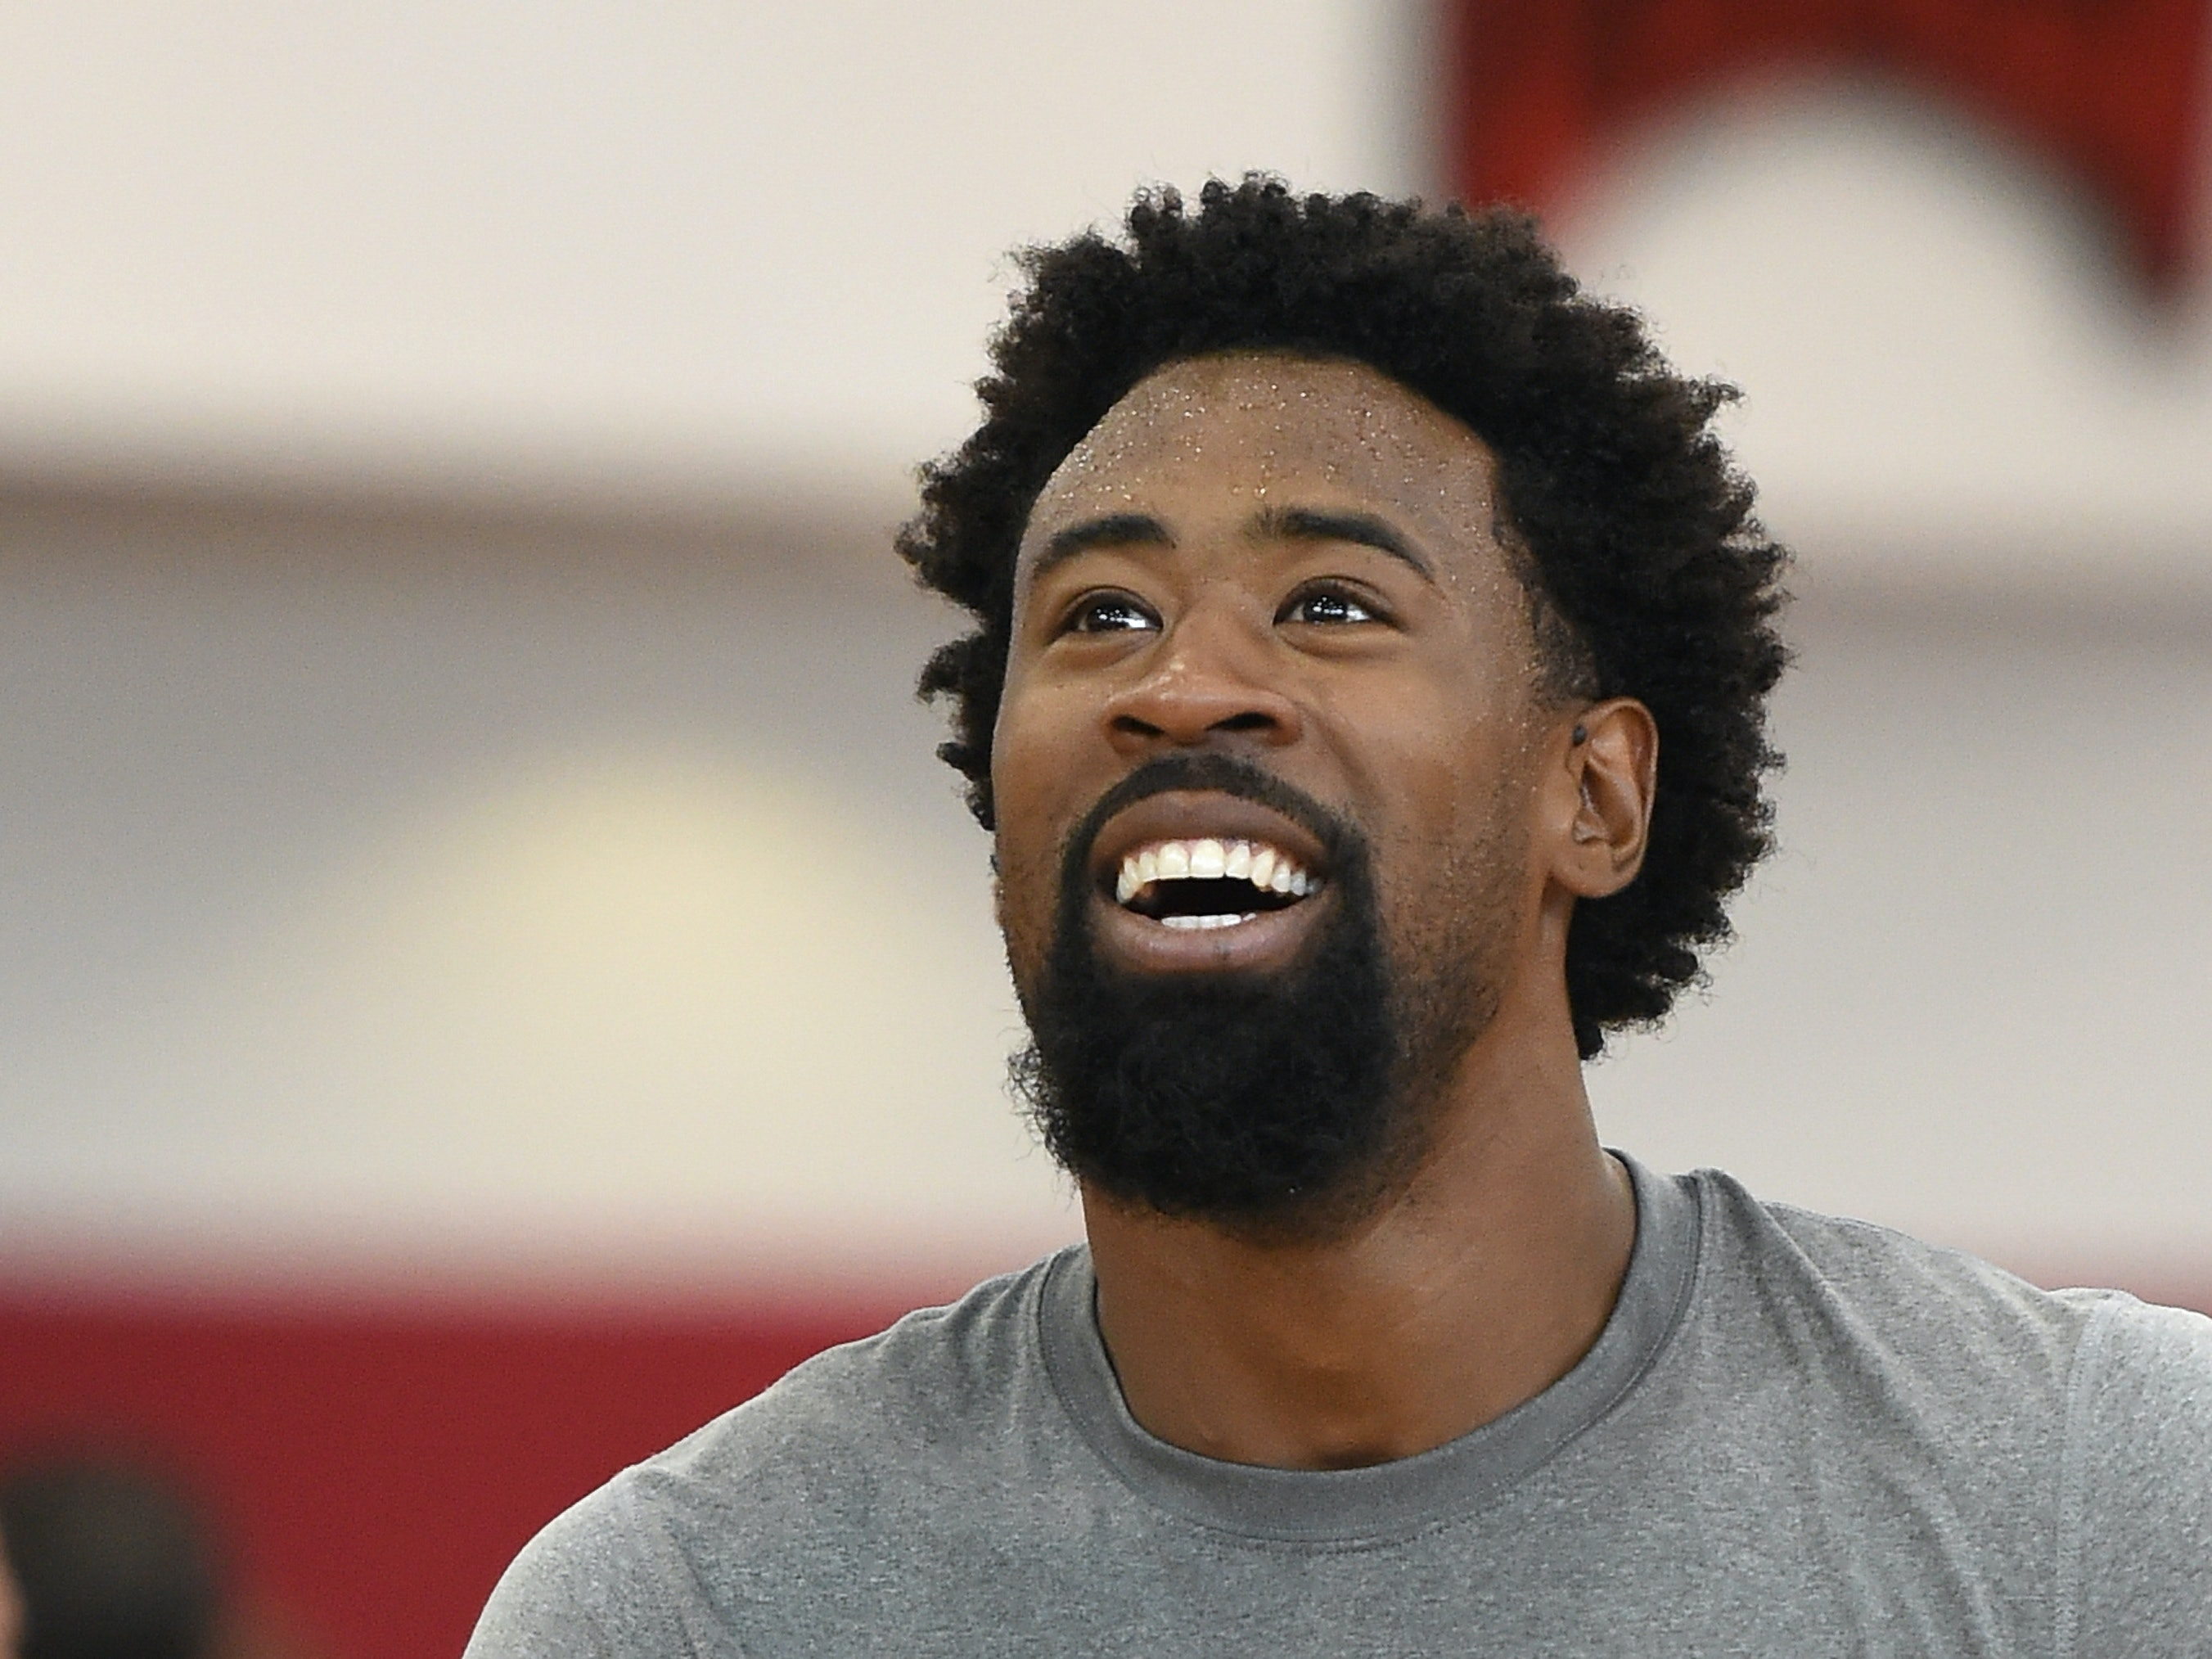 LAS VEGAS, NV - AUGUST 11:  DeAndre Jordan #53 of the 2015 USA Basketball Men's National Team smiles during a practice session at the Mendenhall Center on August 11, 2015 in Las Vegas, Nevada.  (Photo by Ethan Miller/Getty Images)